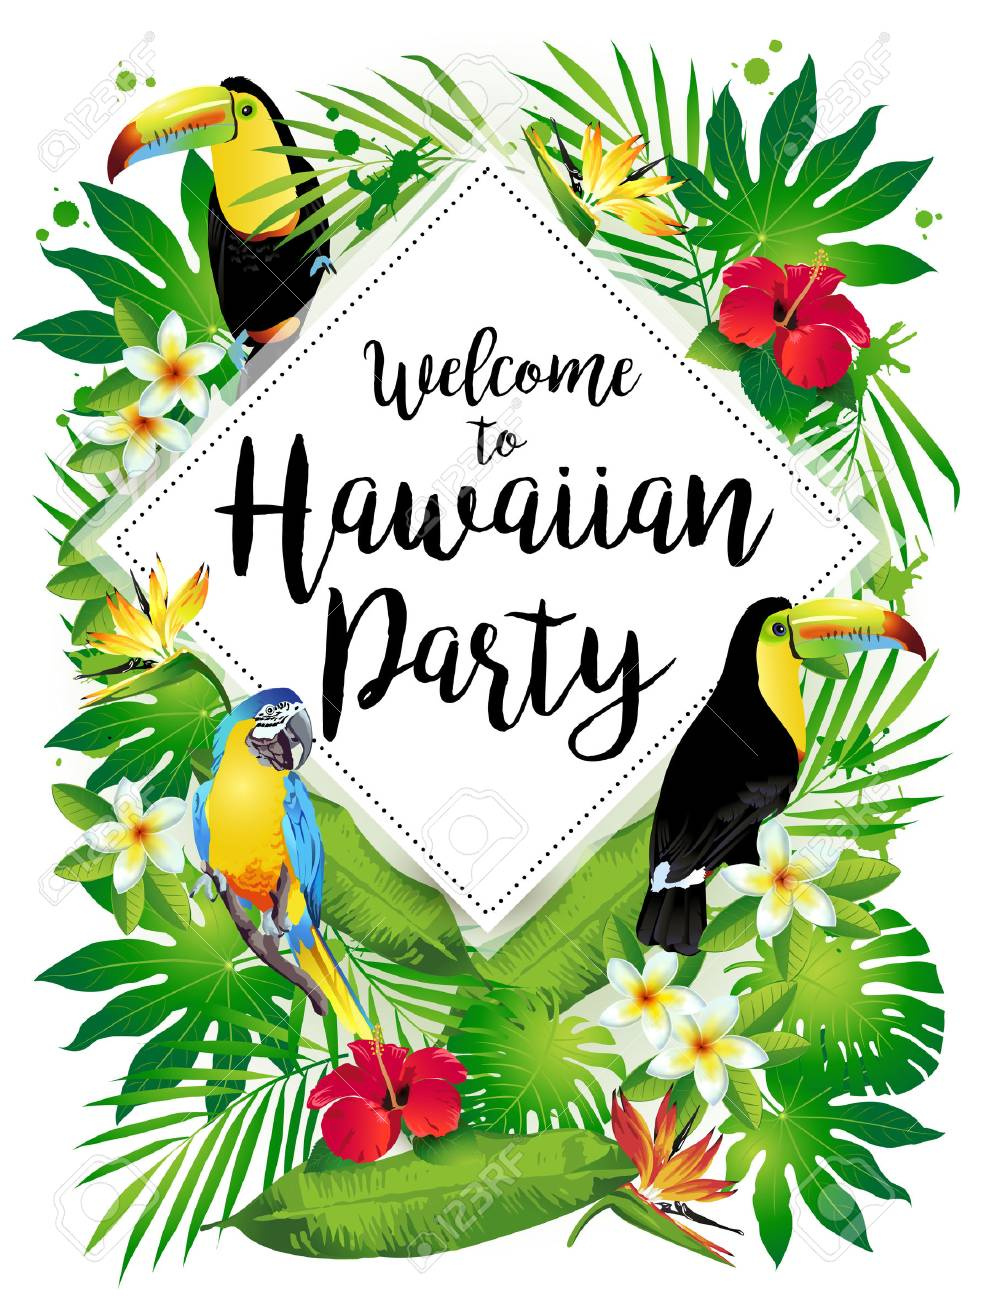 Welcome to Hawaiian party! Vector illustration of tropical birds, flowers, leaves. - 69222411